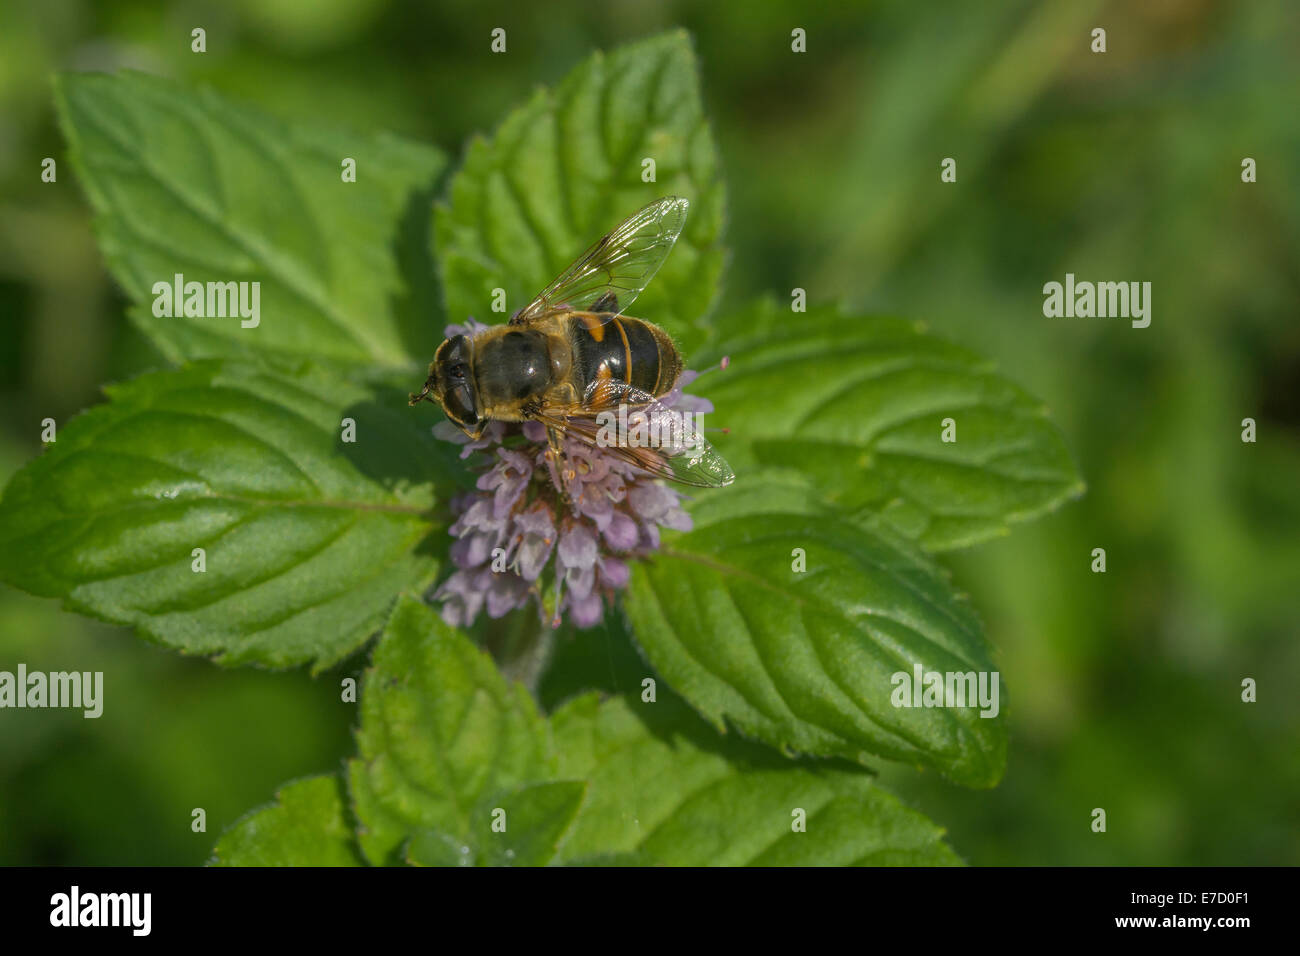 Bee foraging for nectar on Water Mint / Mentha aquatica growing in marshy meadow ground. Foraging and dining on Stock Photo